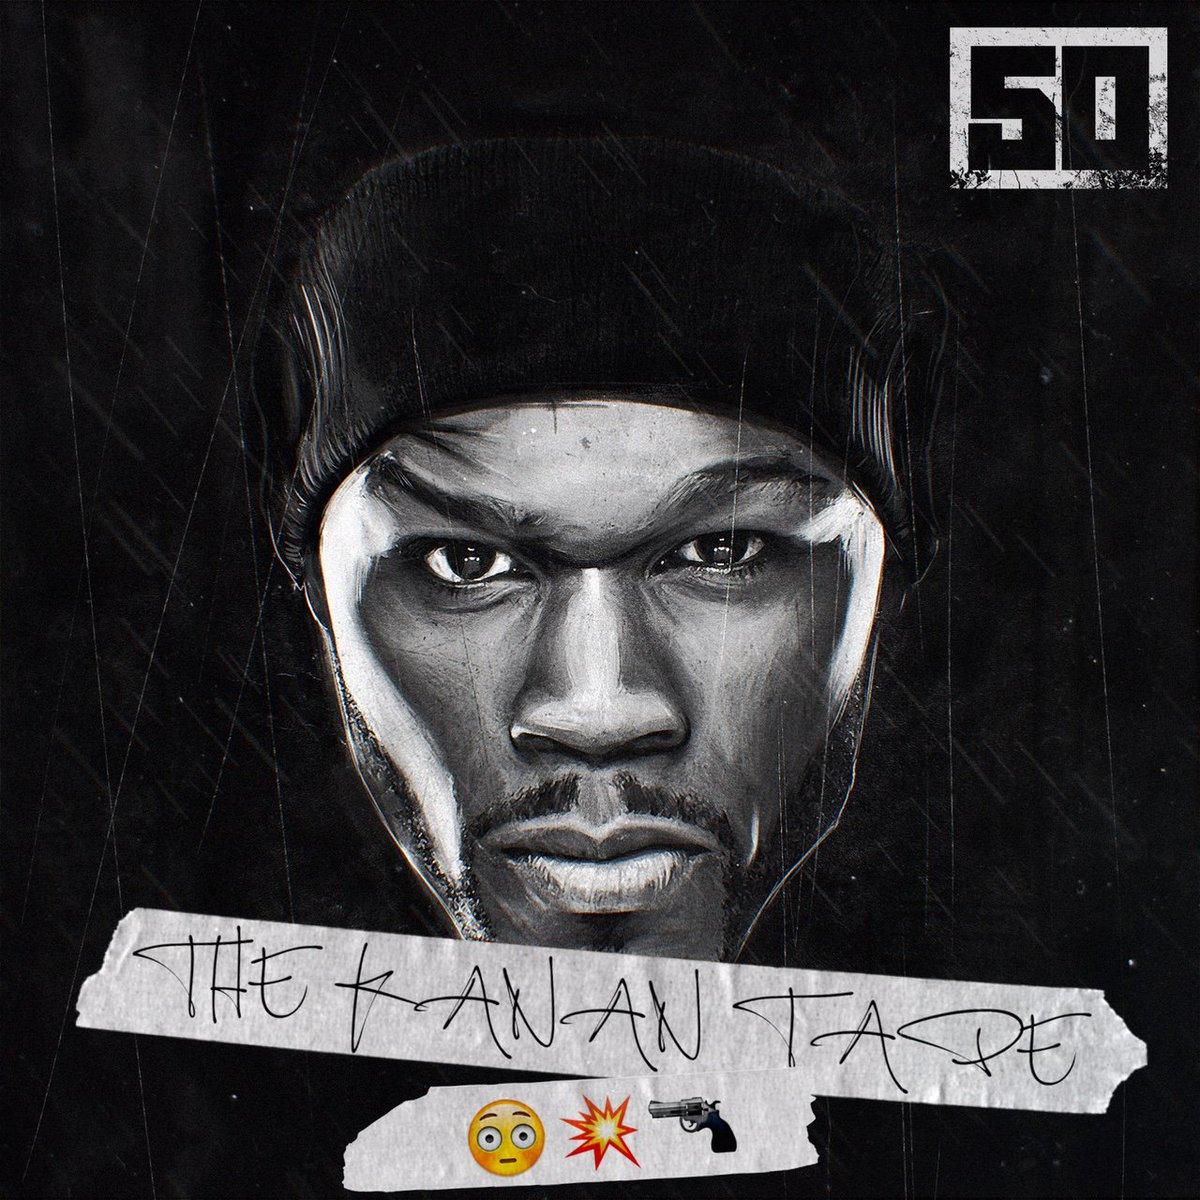 RT @thisis50: Fire! @50cent just dropped a new track